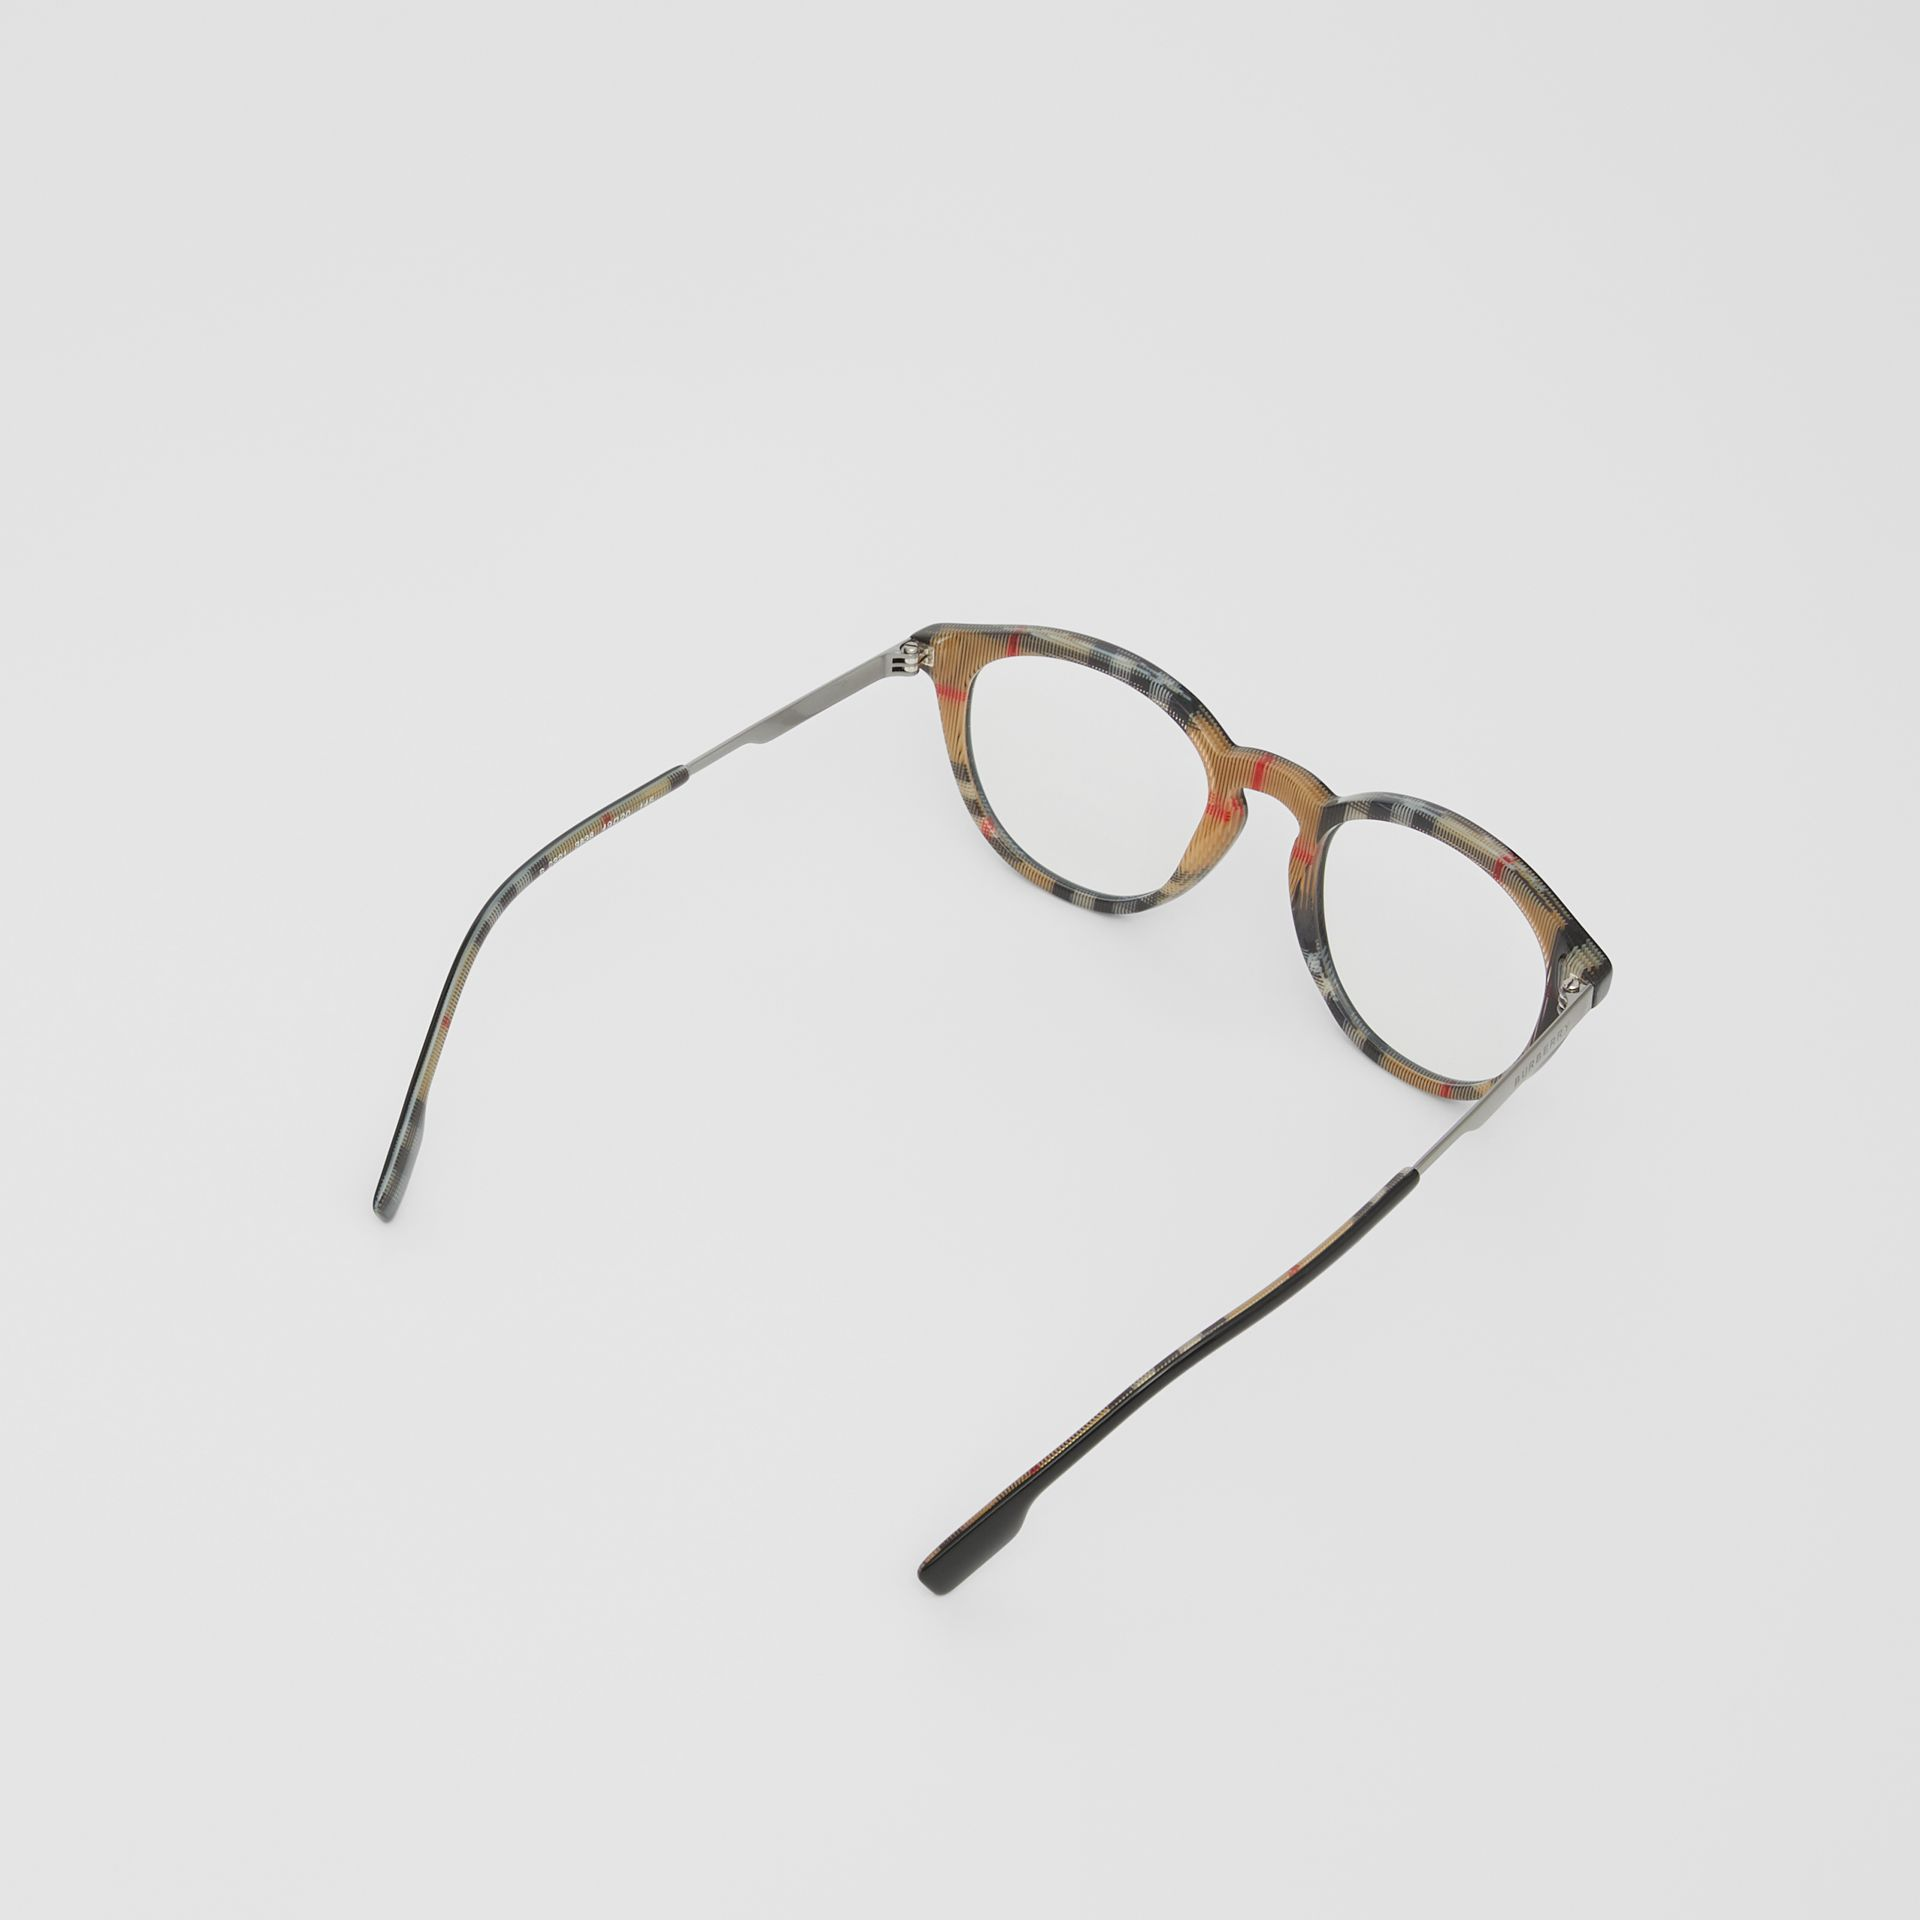 Round Optical Frames in Black/beige - Men | Burberry - gallery image 4